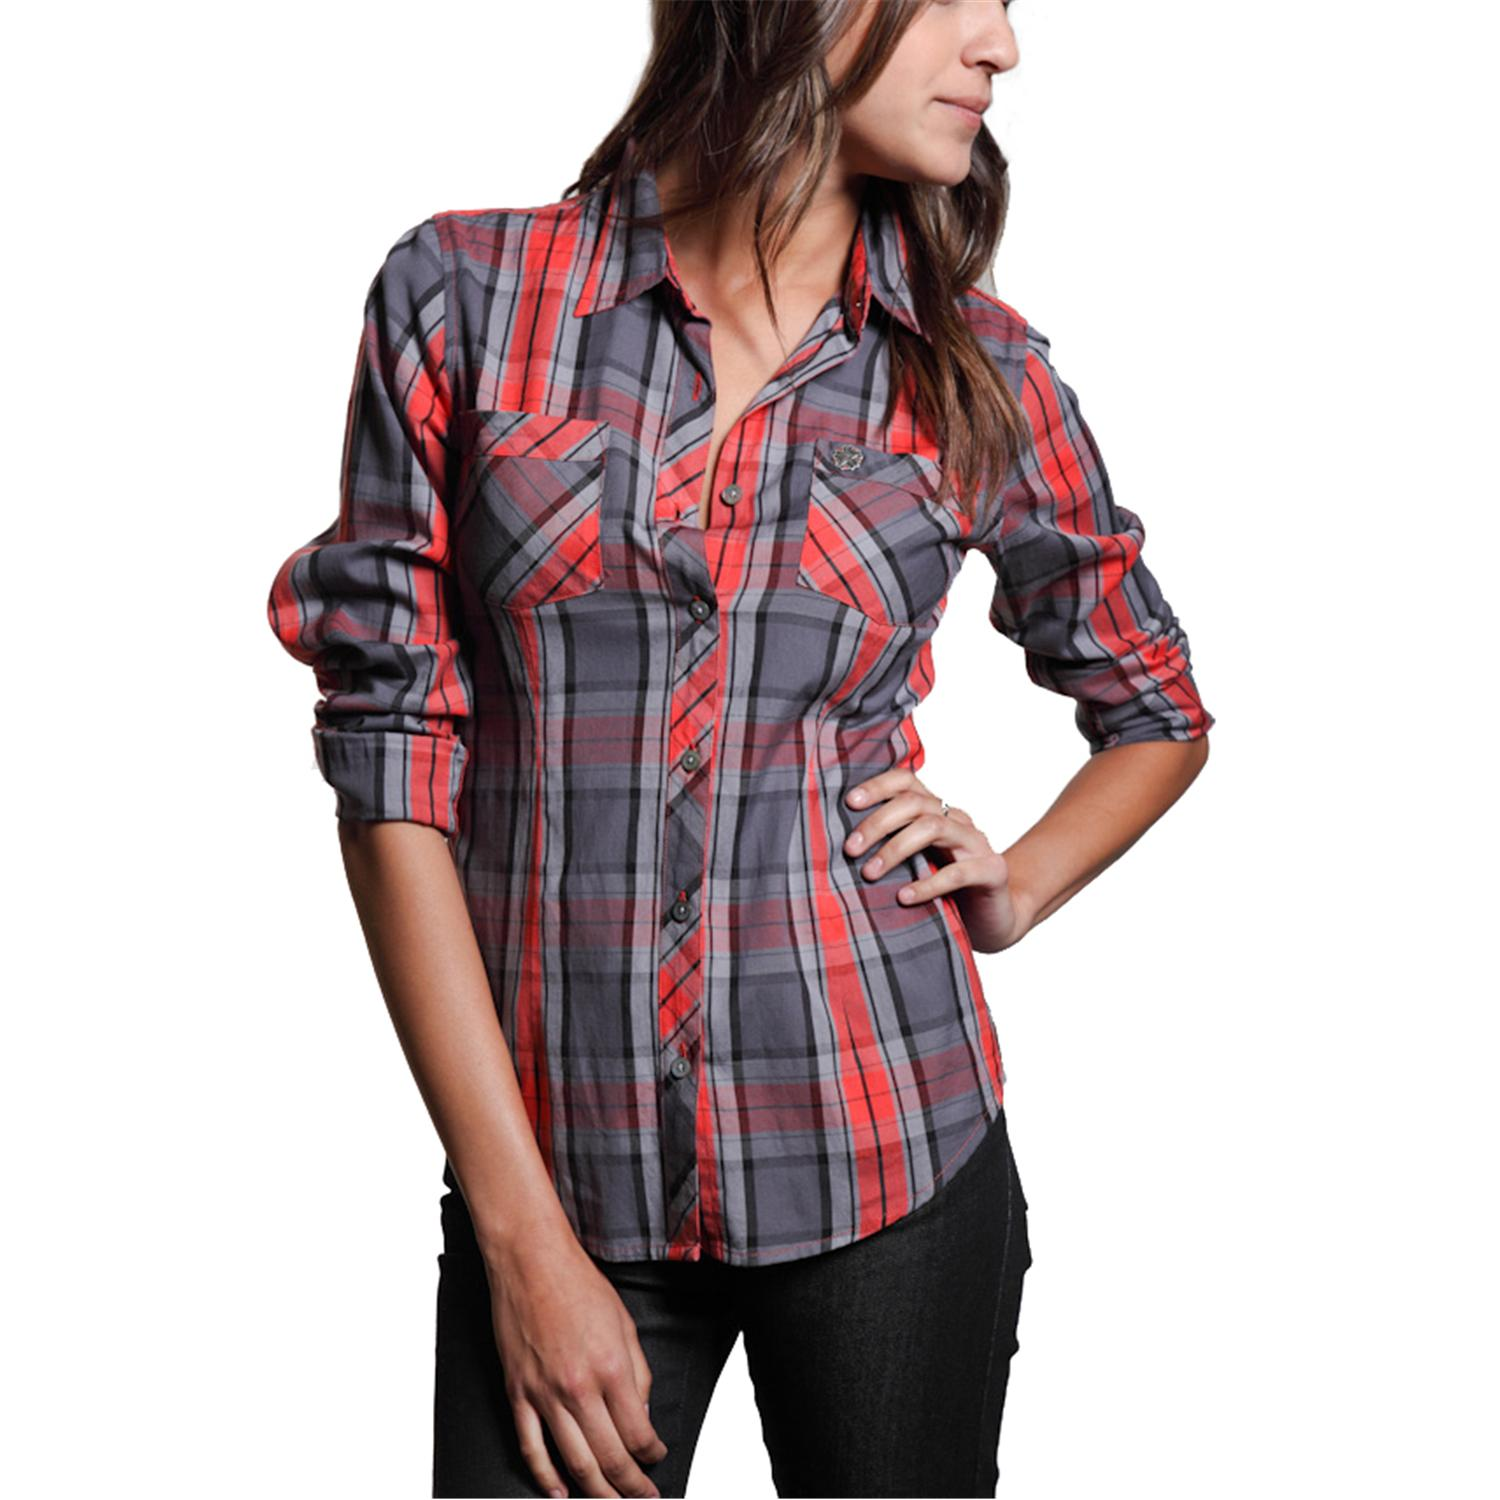 Obey Clothing Harvest Woven Shirt - Women's